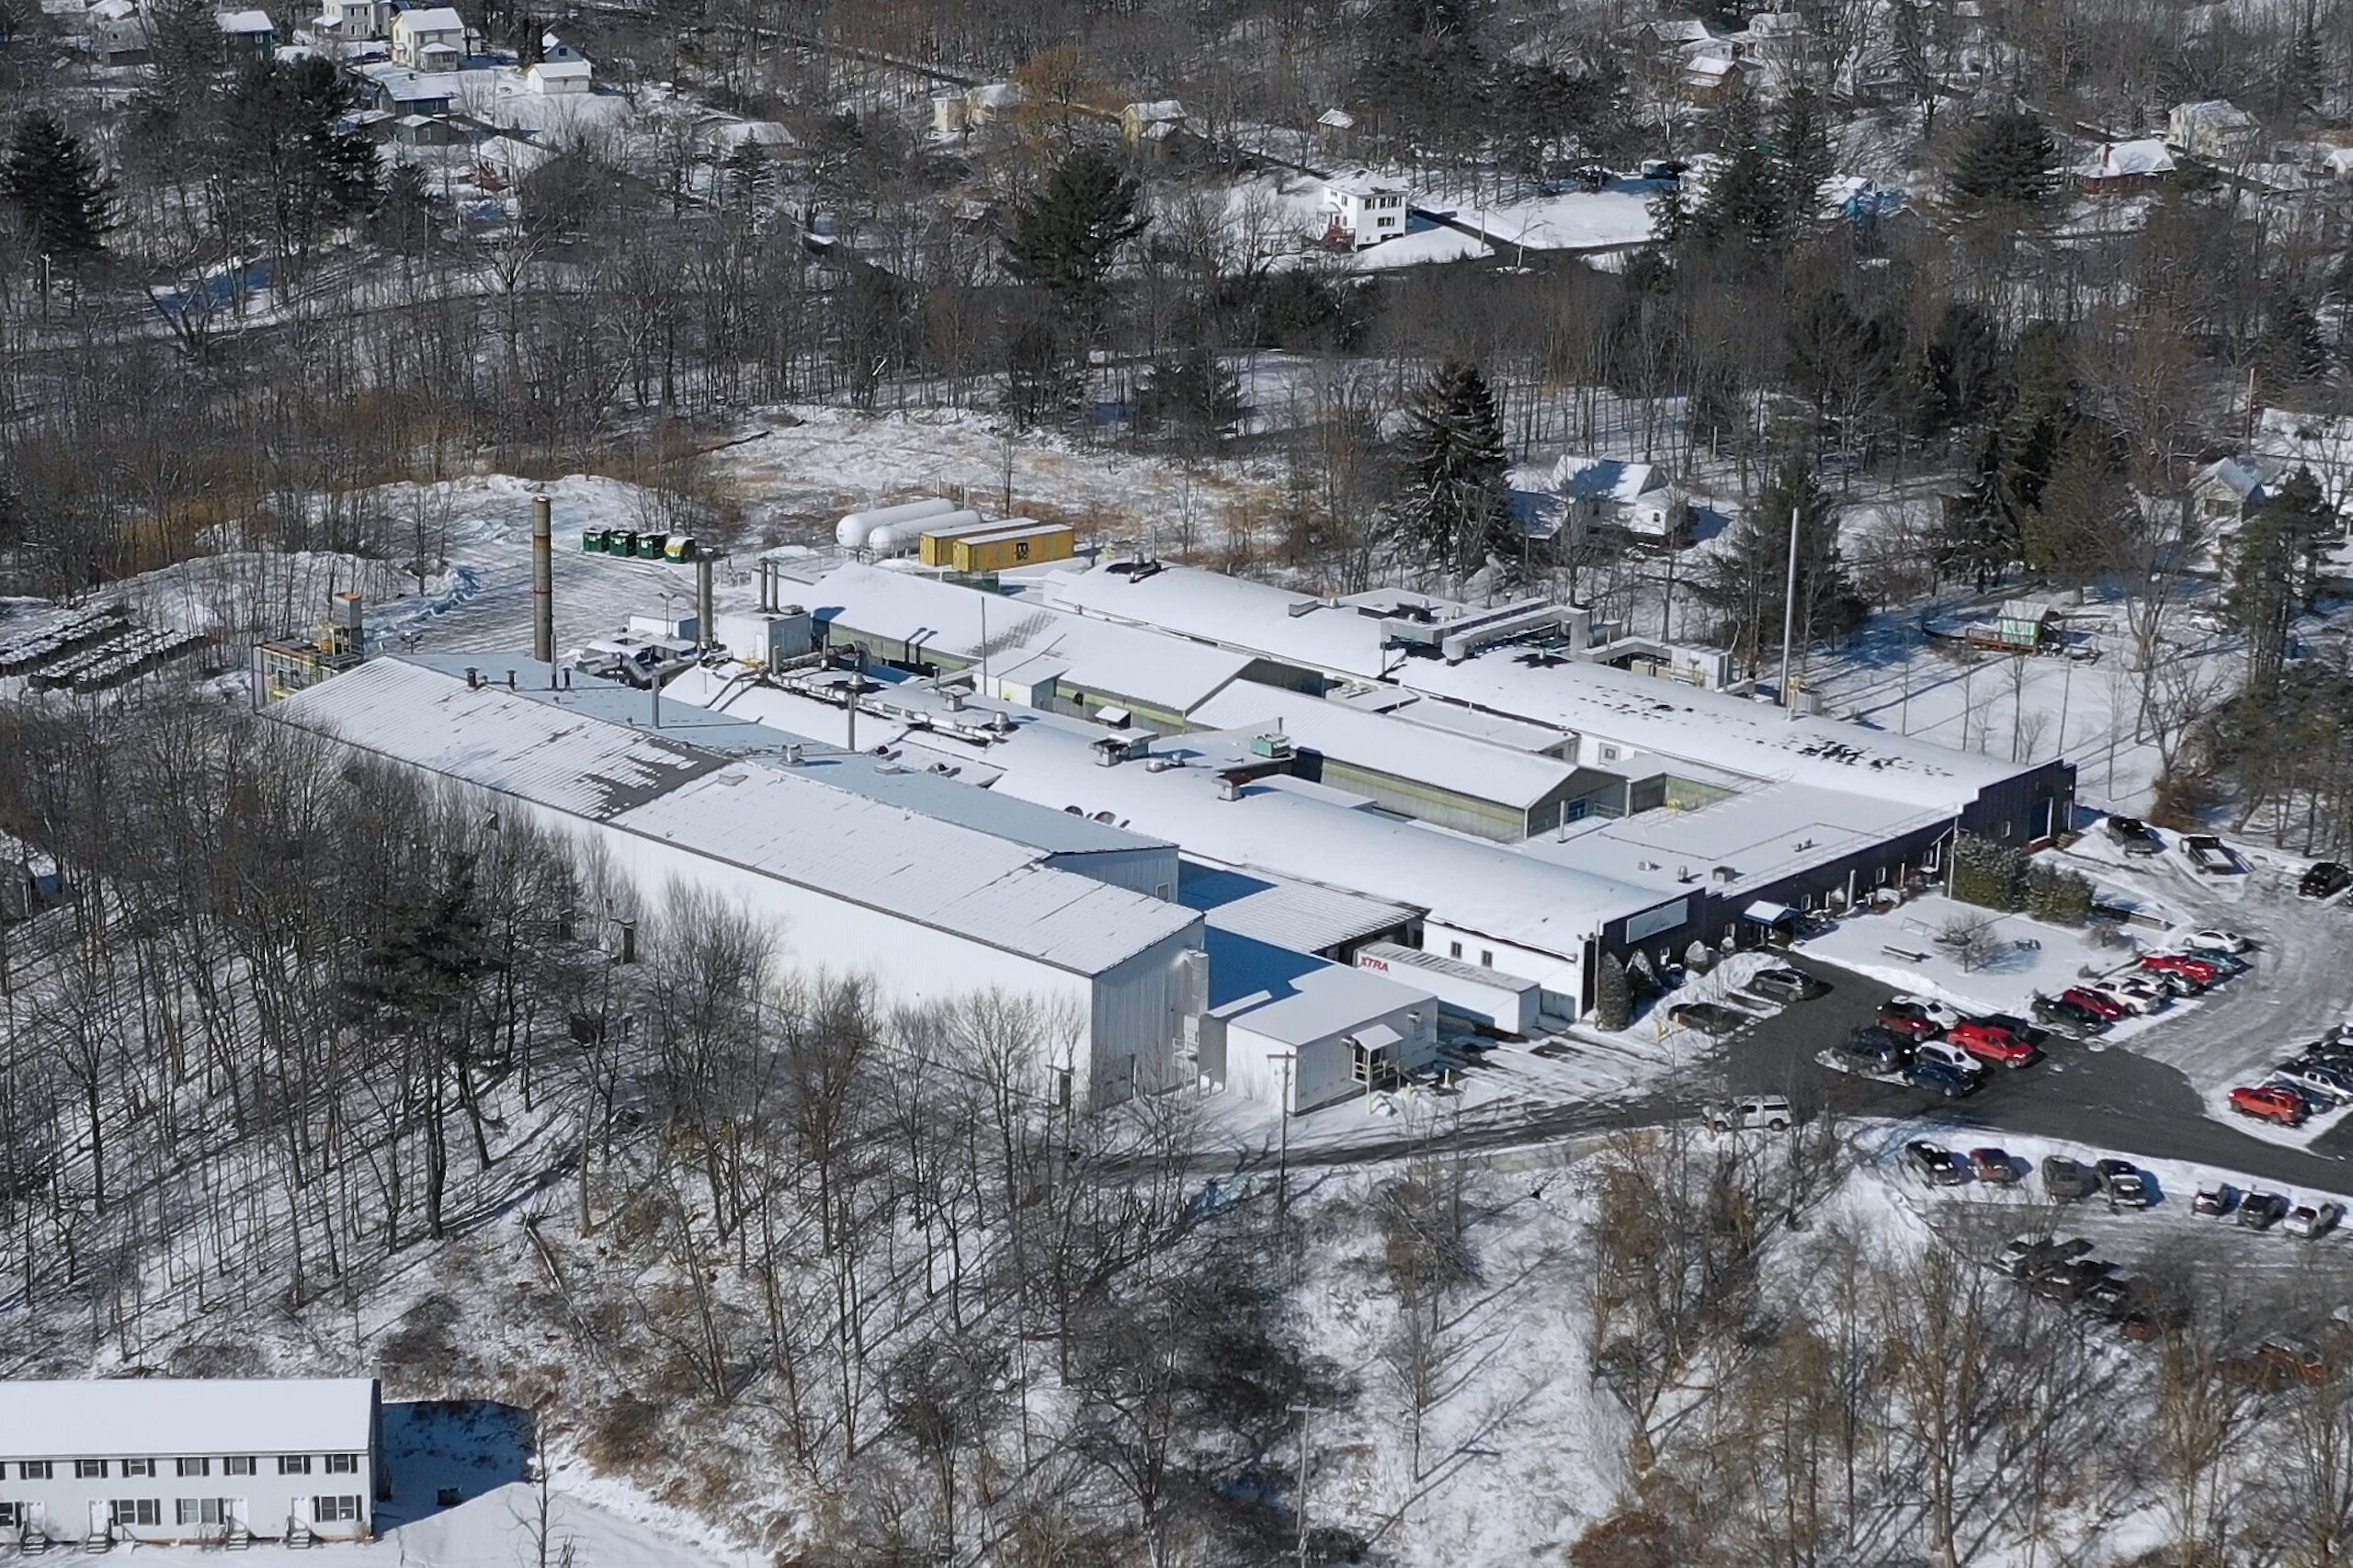 The Saint-Gobain Performance Plastics site in Hoosick Falls, New York.